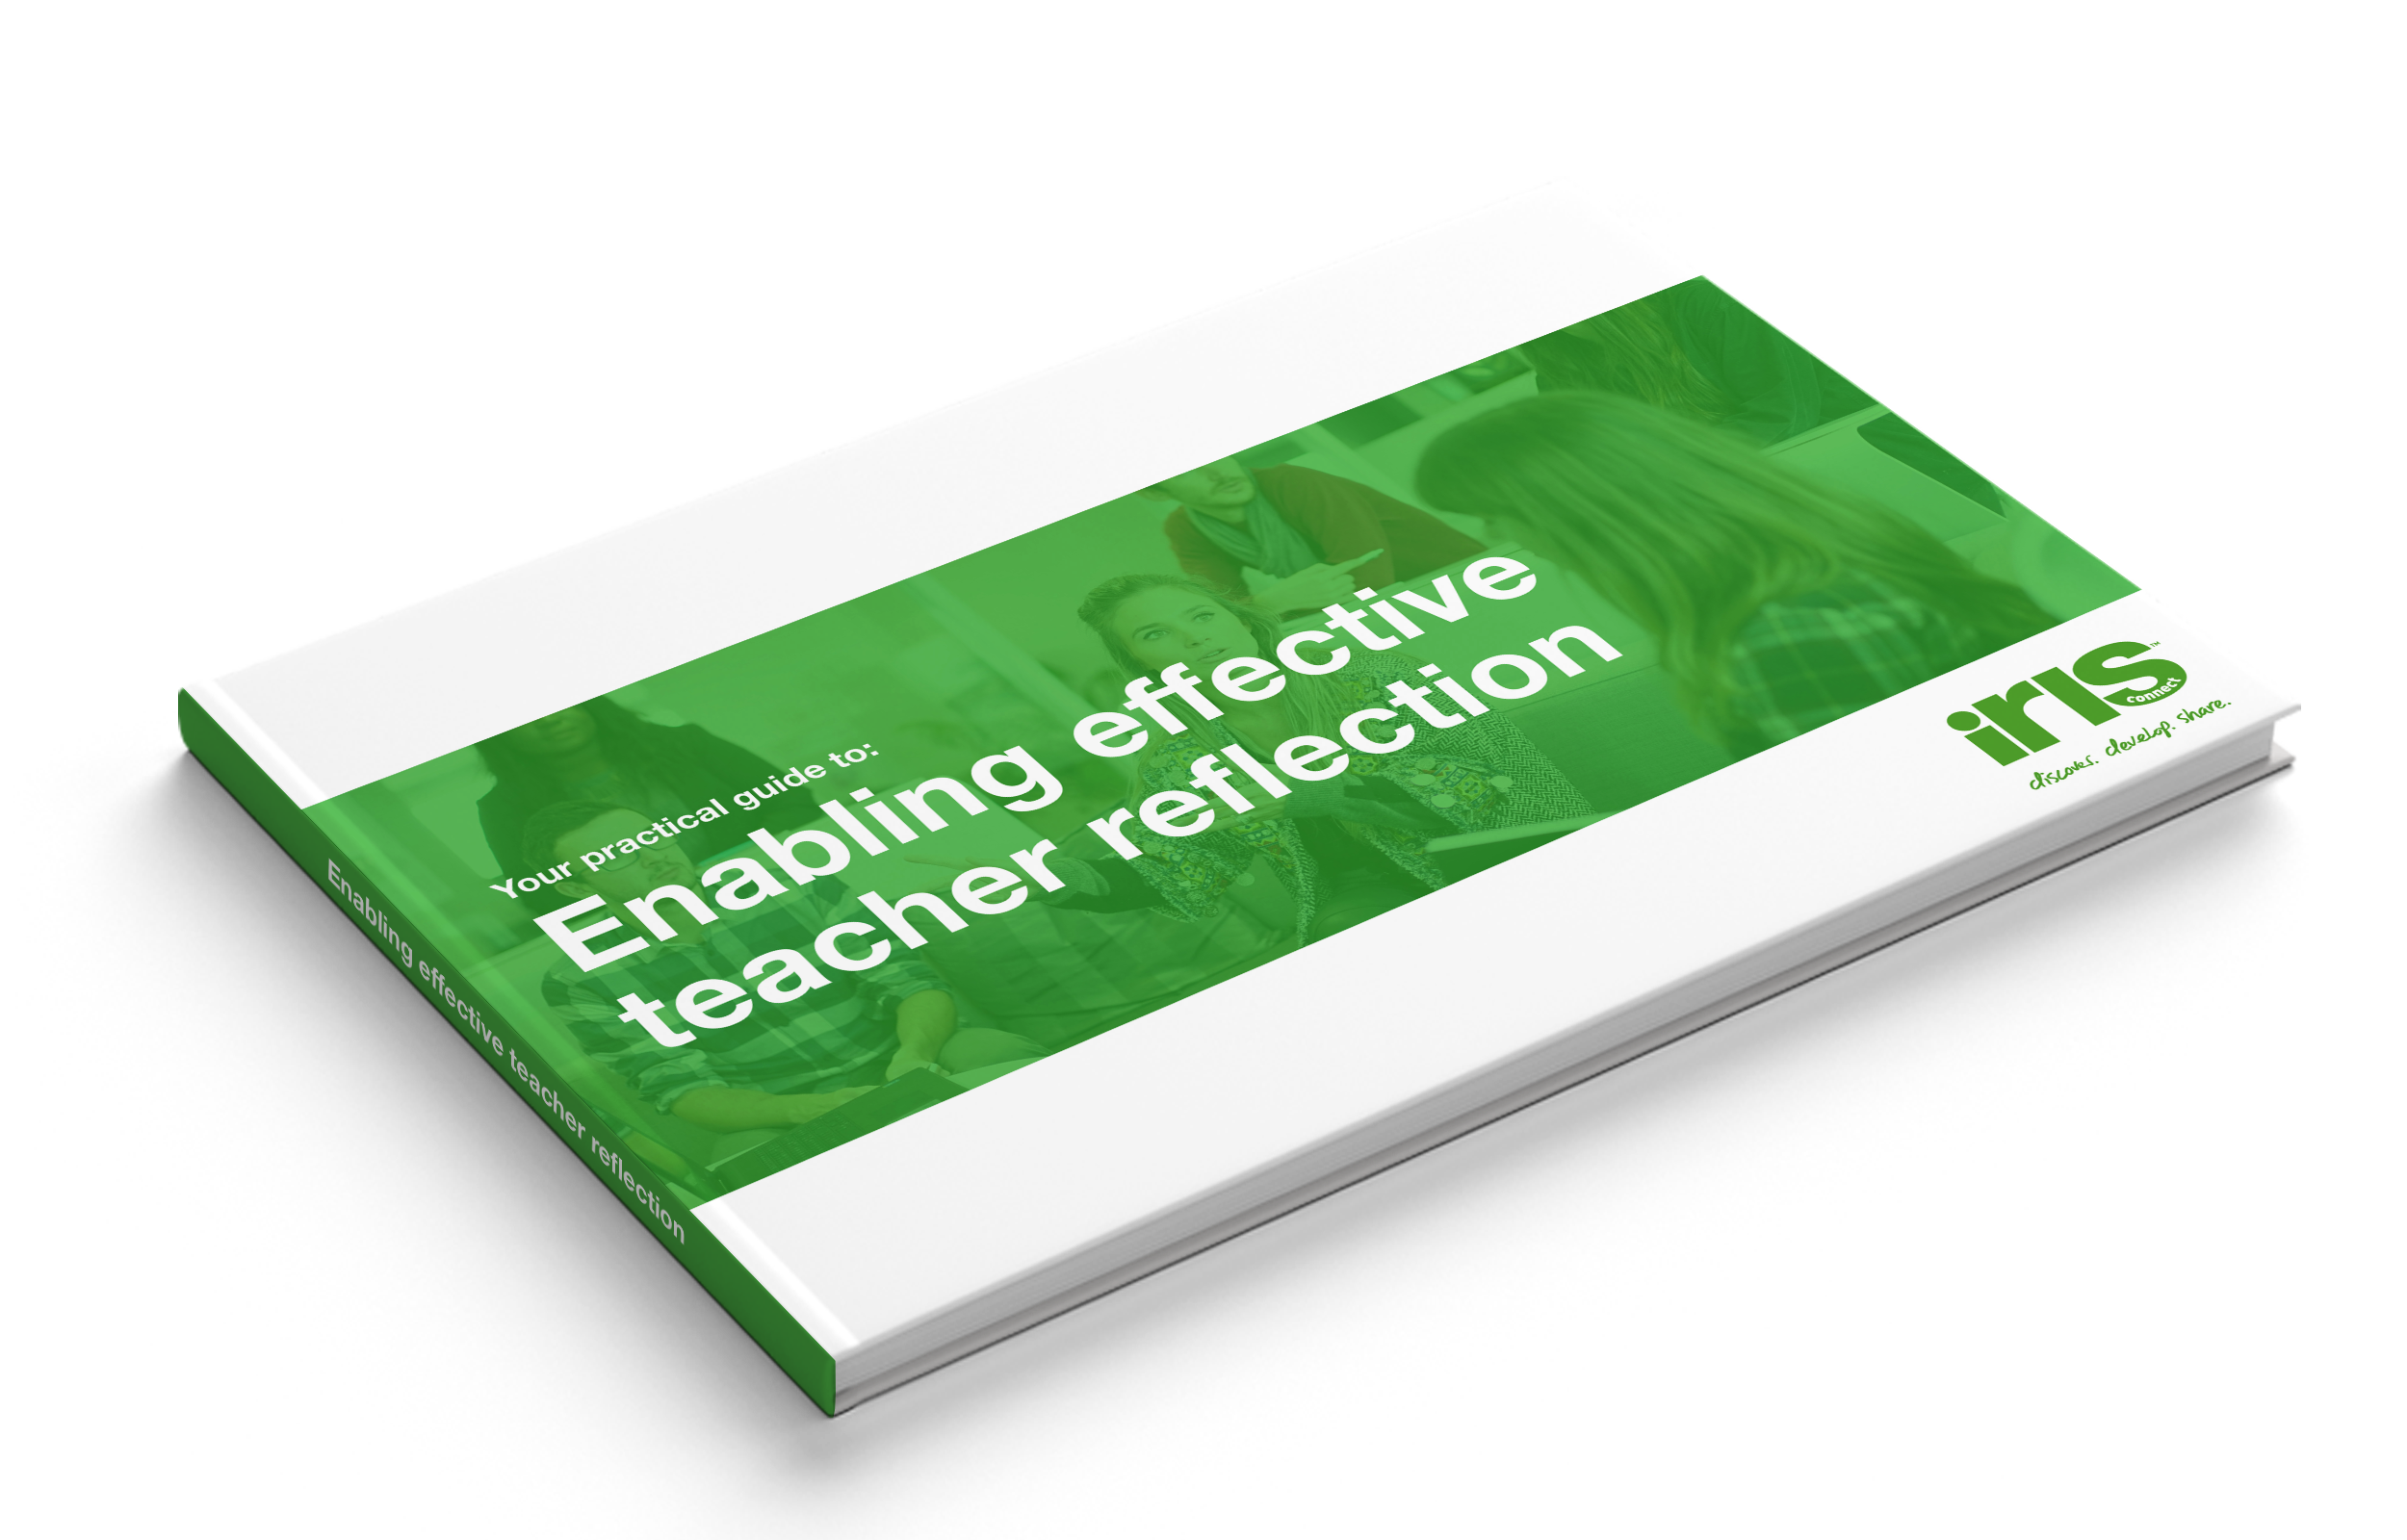 Practical-guide-to-Enabling-effective-teacher-reflection---BOOK